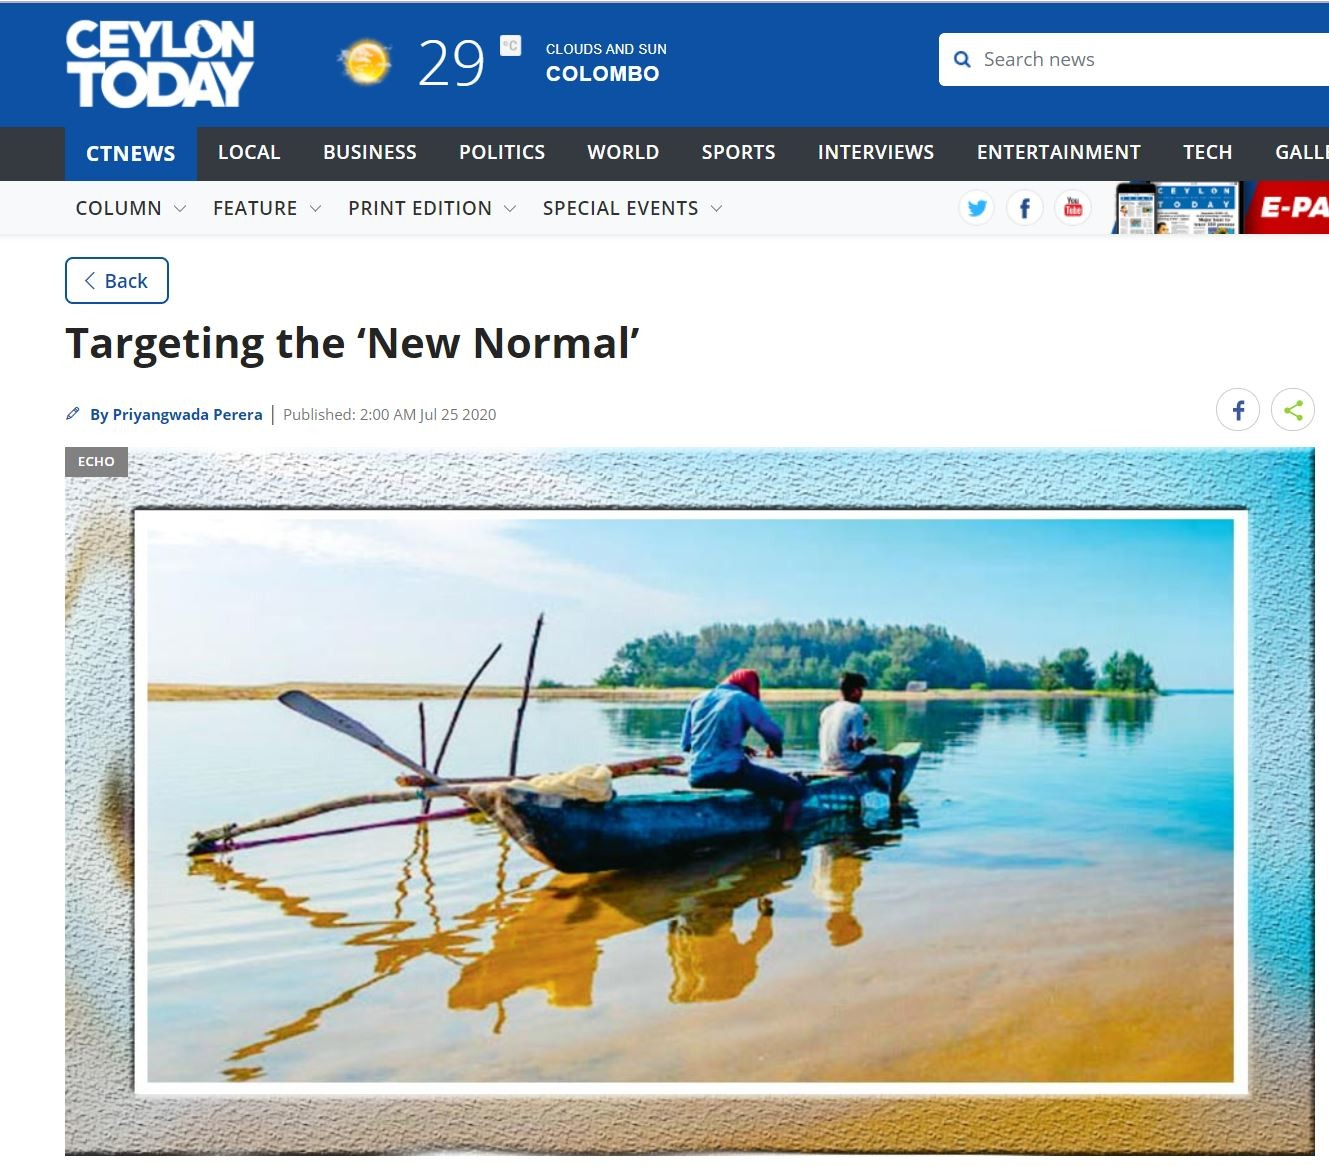 Targeting the 'New Normal' (Ceylon Today)